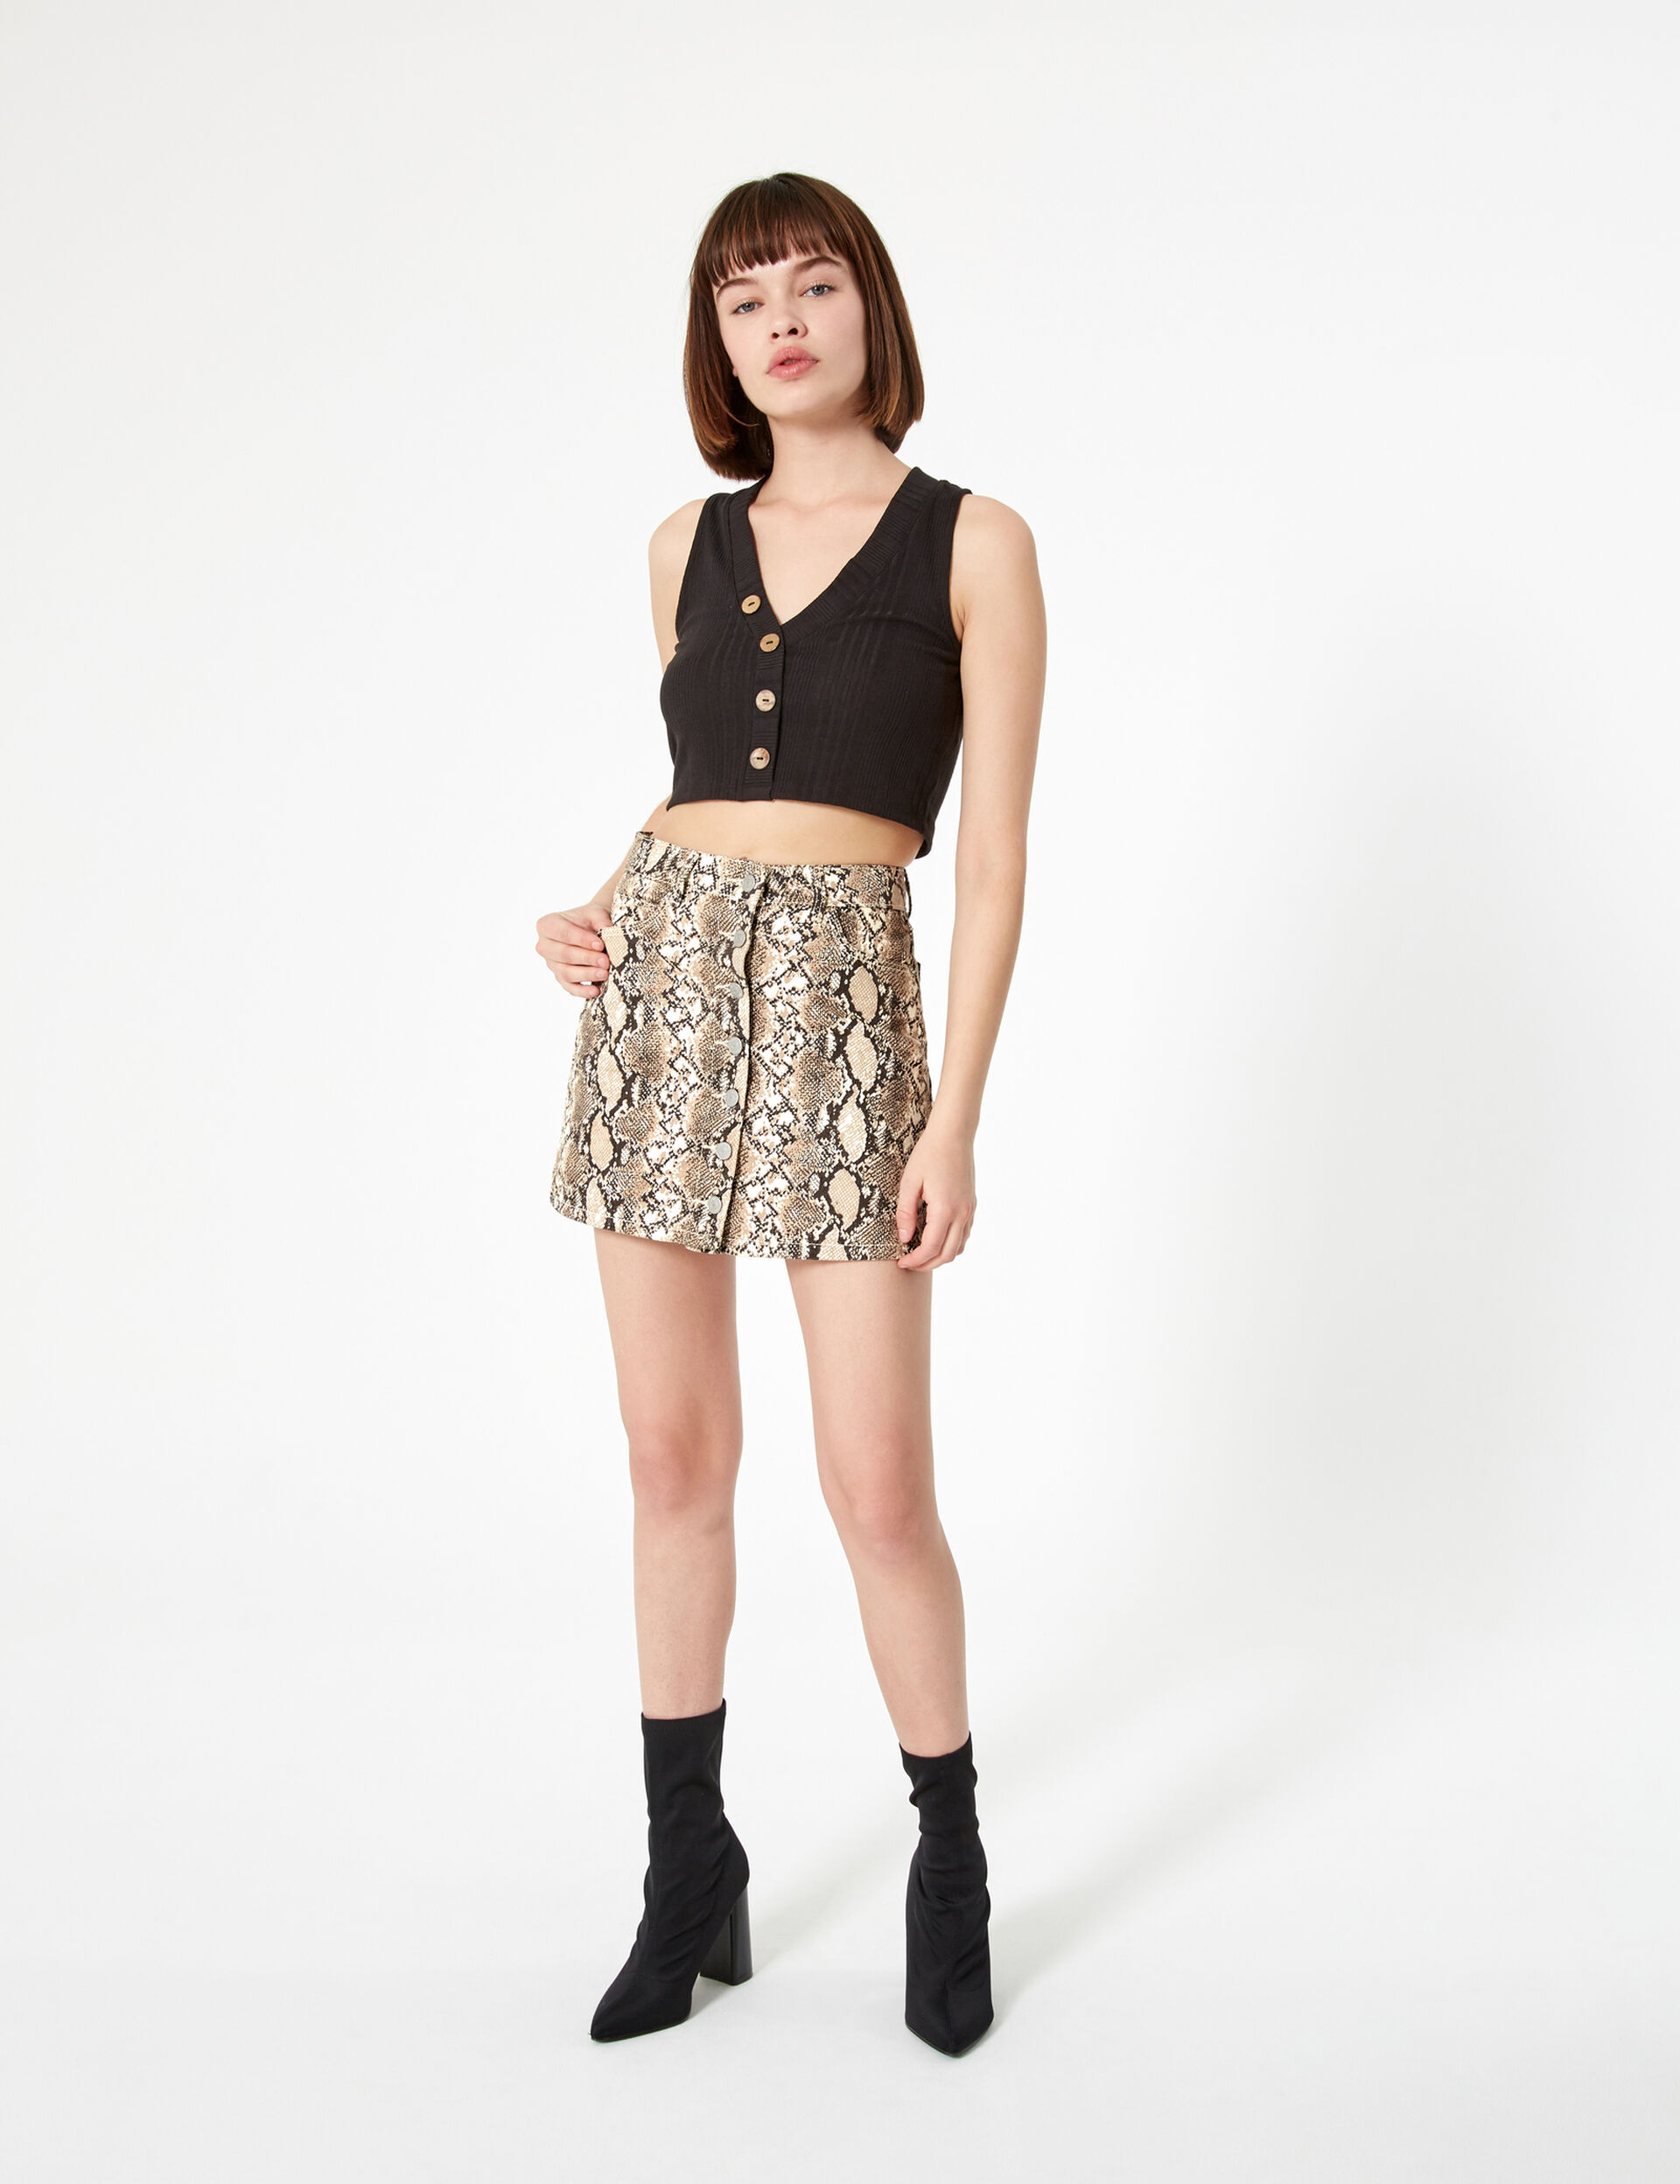 Beige and black button-up skirt with python print detail